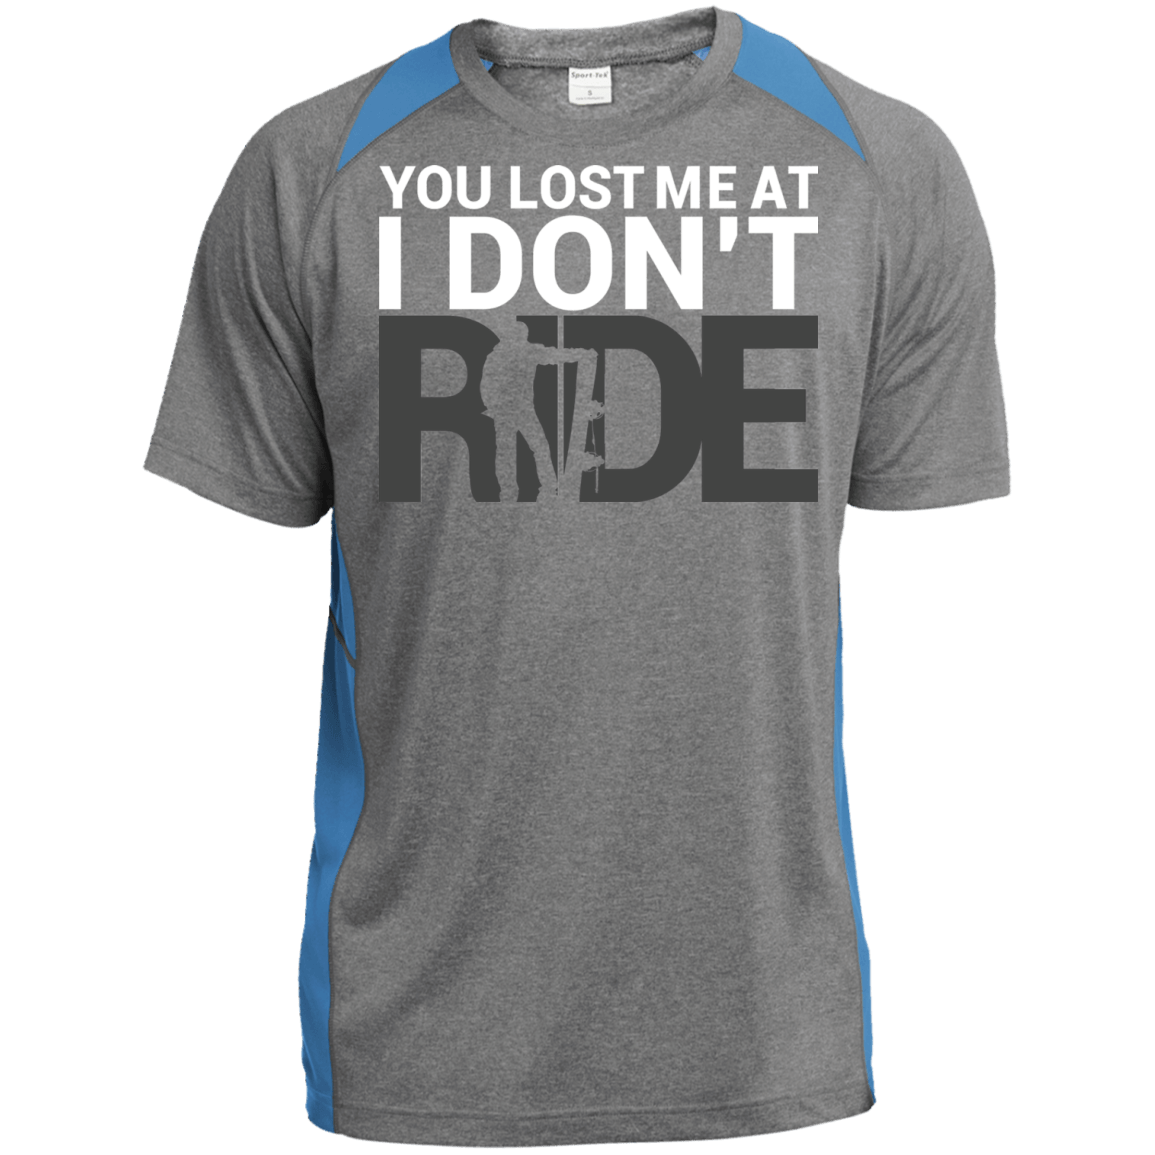 You Lost Me At I Don't Ride Sport-Tek Heather Colorblock Poly T-Shirt - Powderaddicts